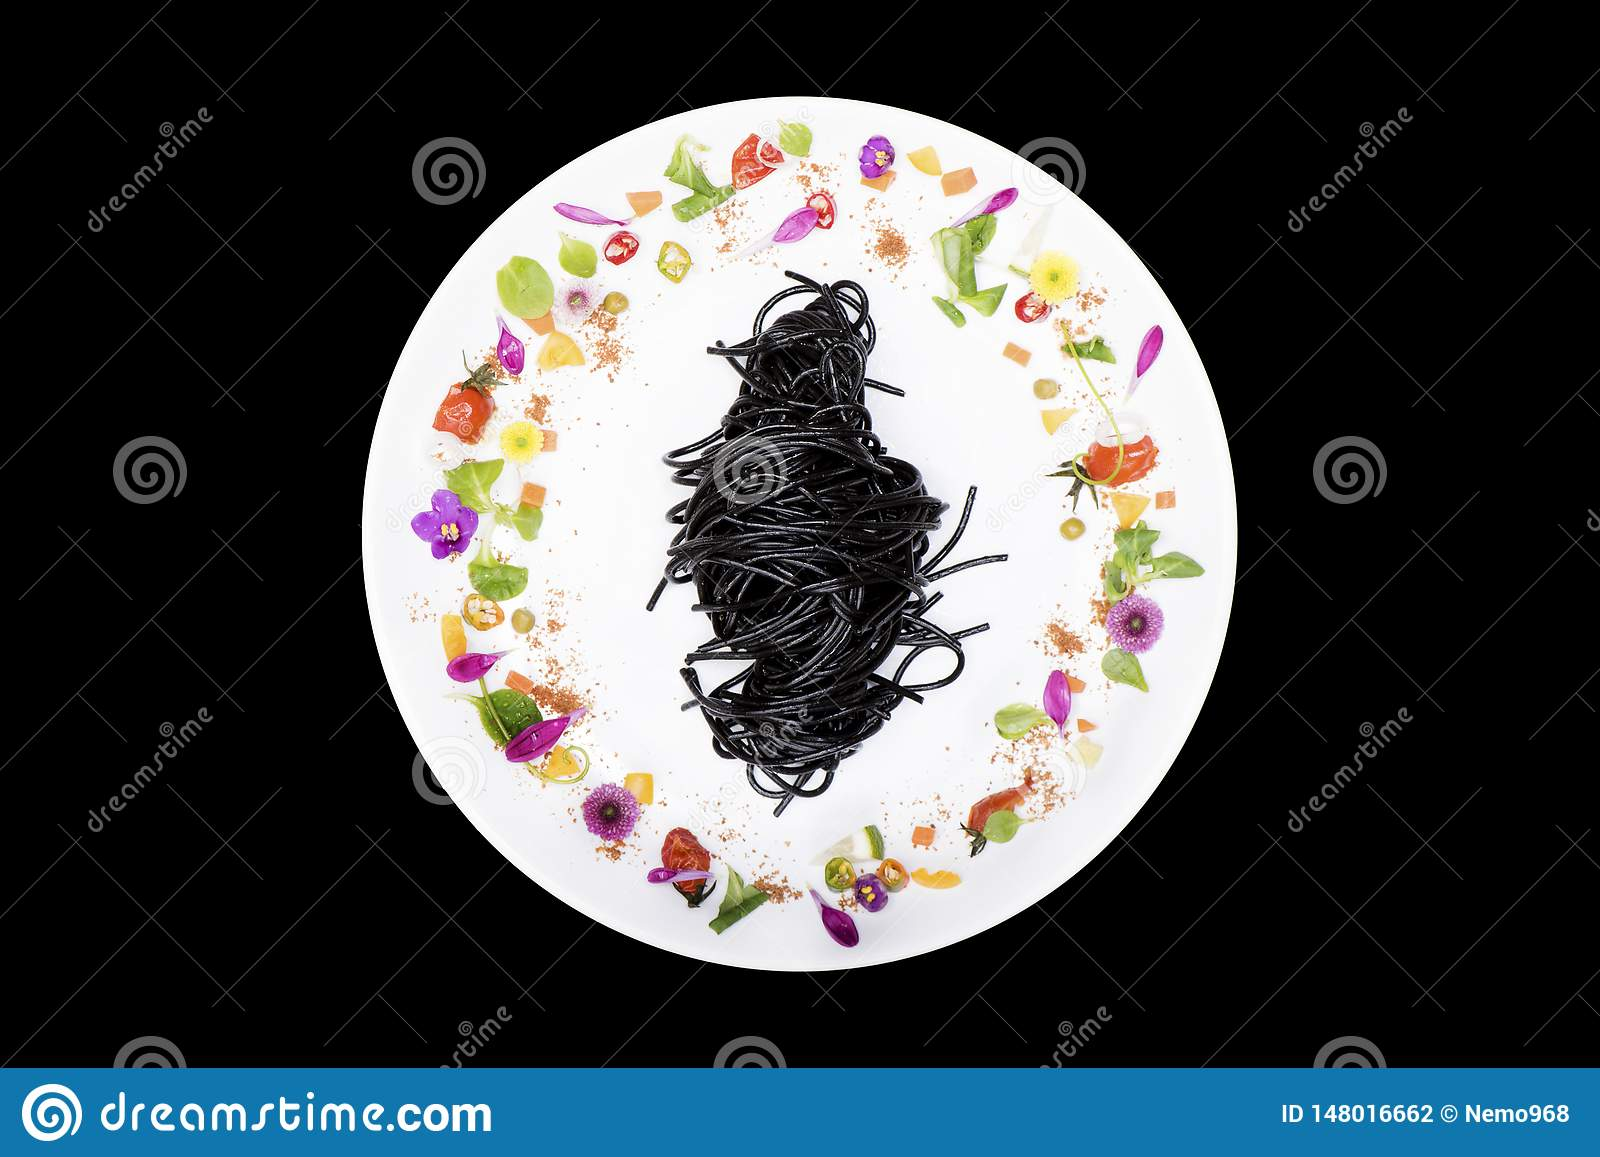 Black squid spaghetti in plate with flower decoration on black background